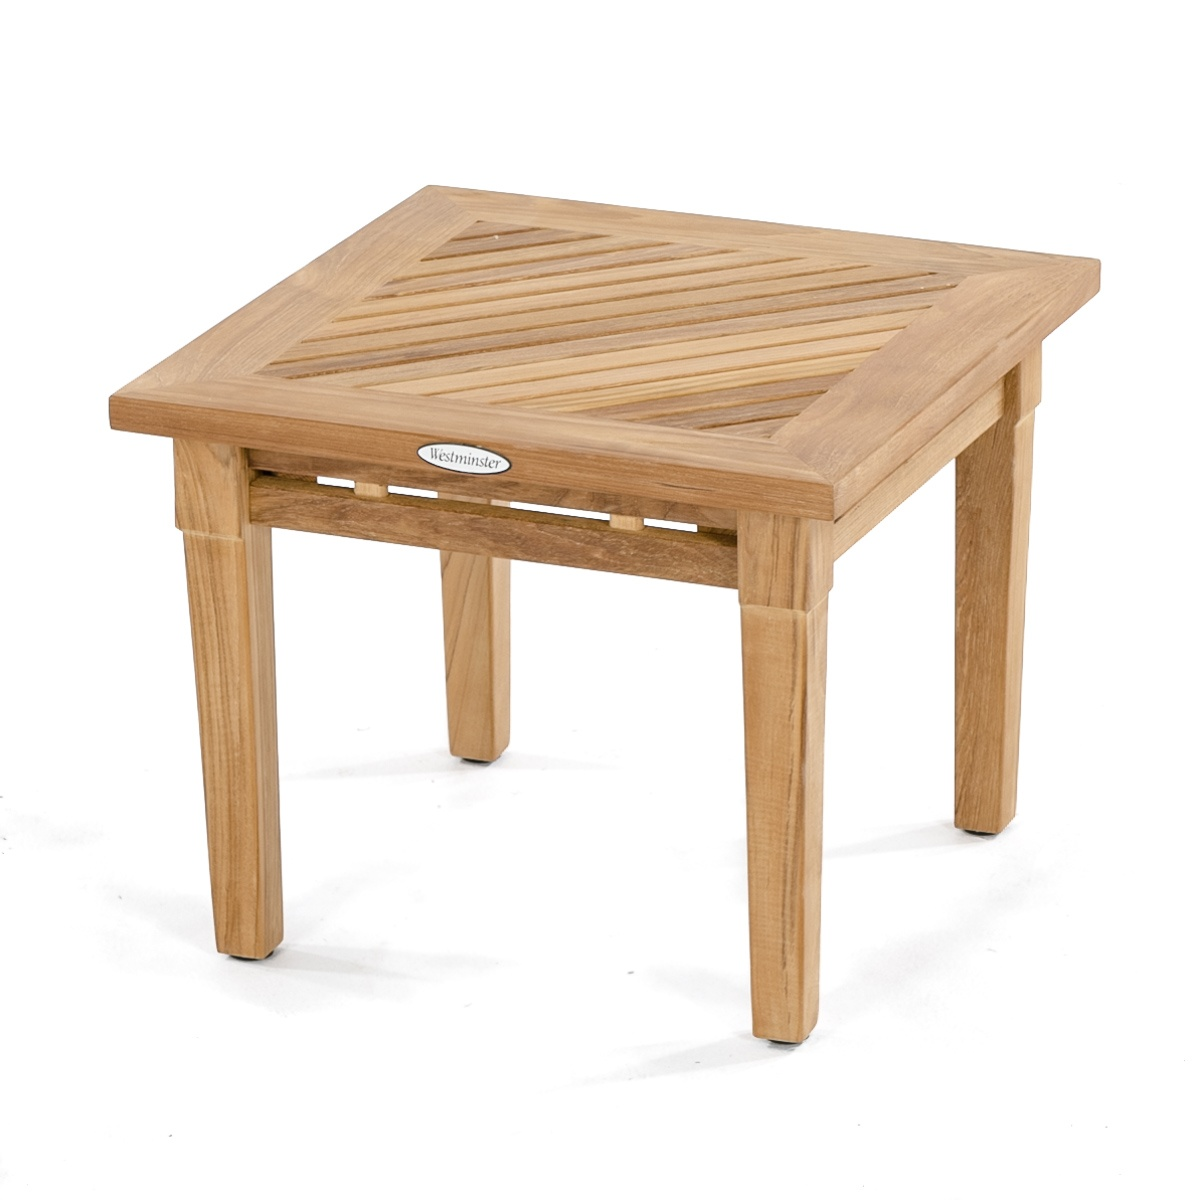 Westminster teak outdoor end table westminster teak for Outdoor teak side table